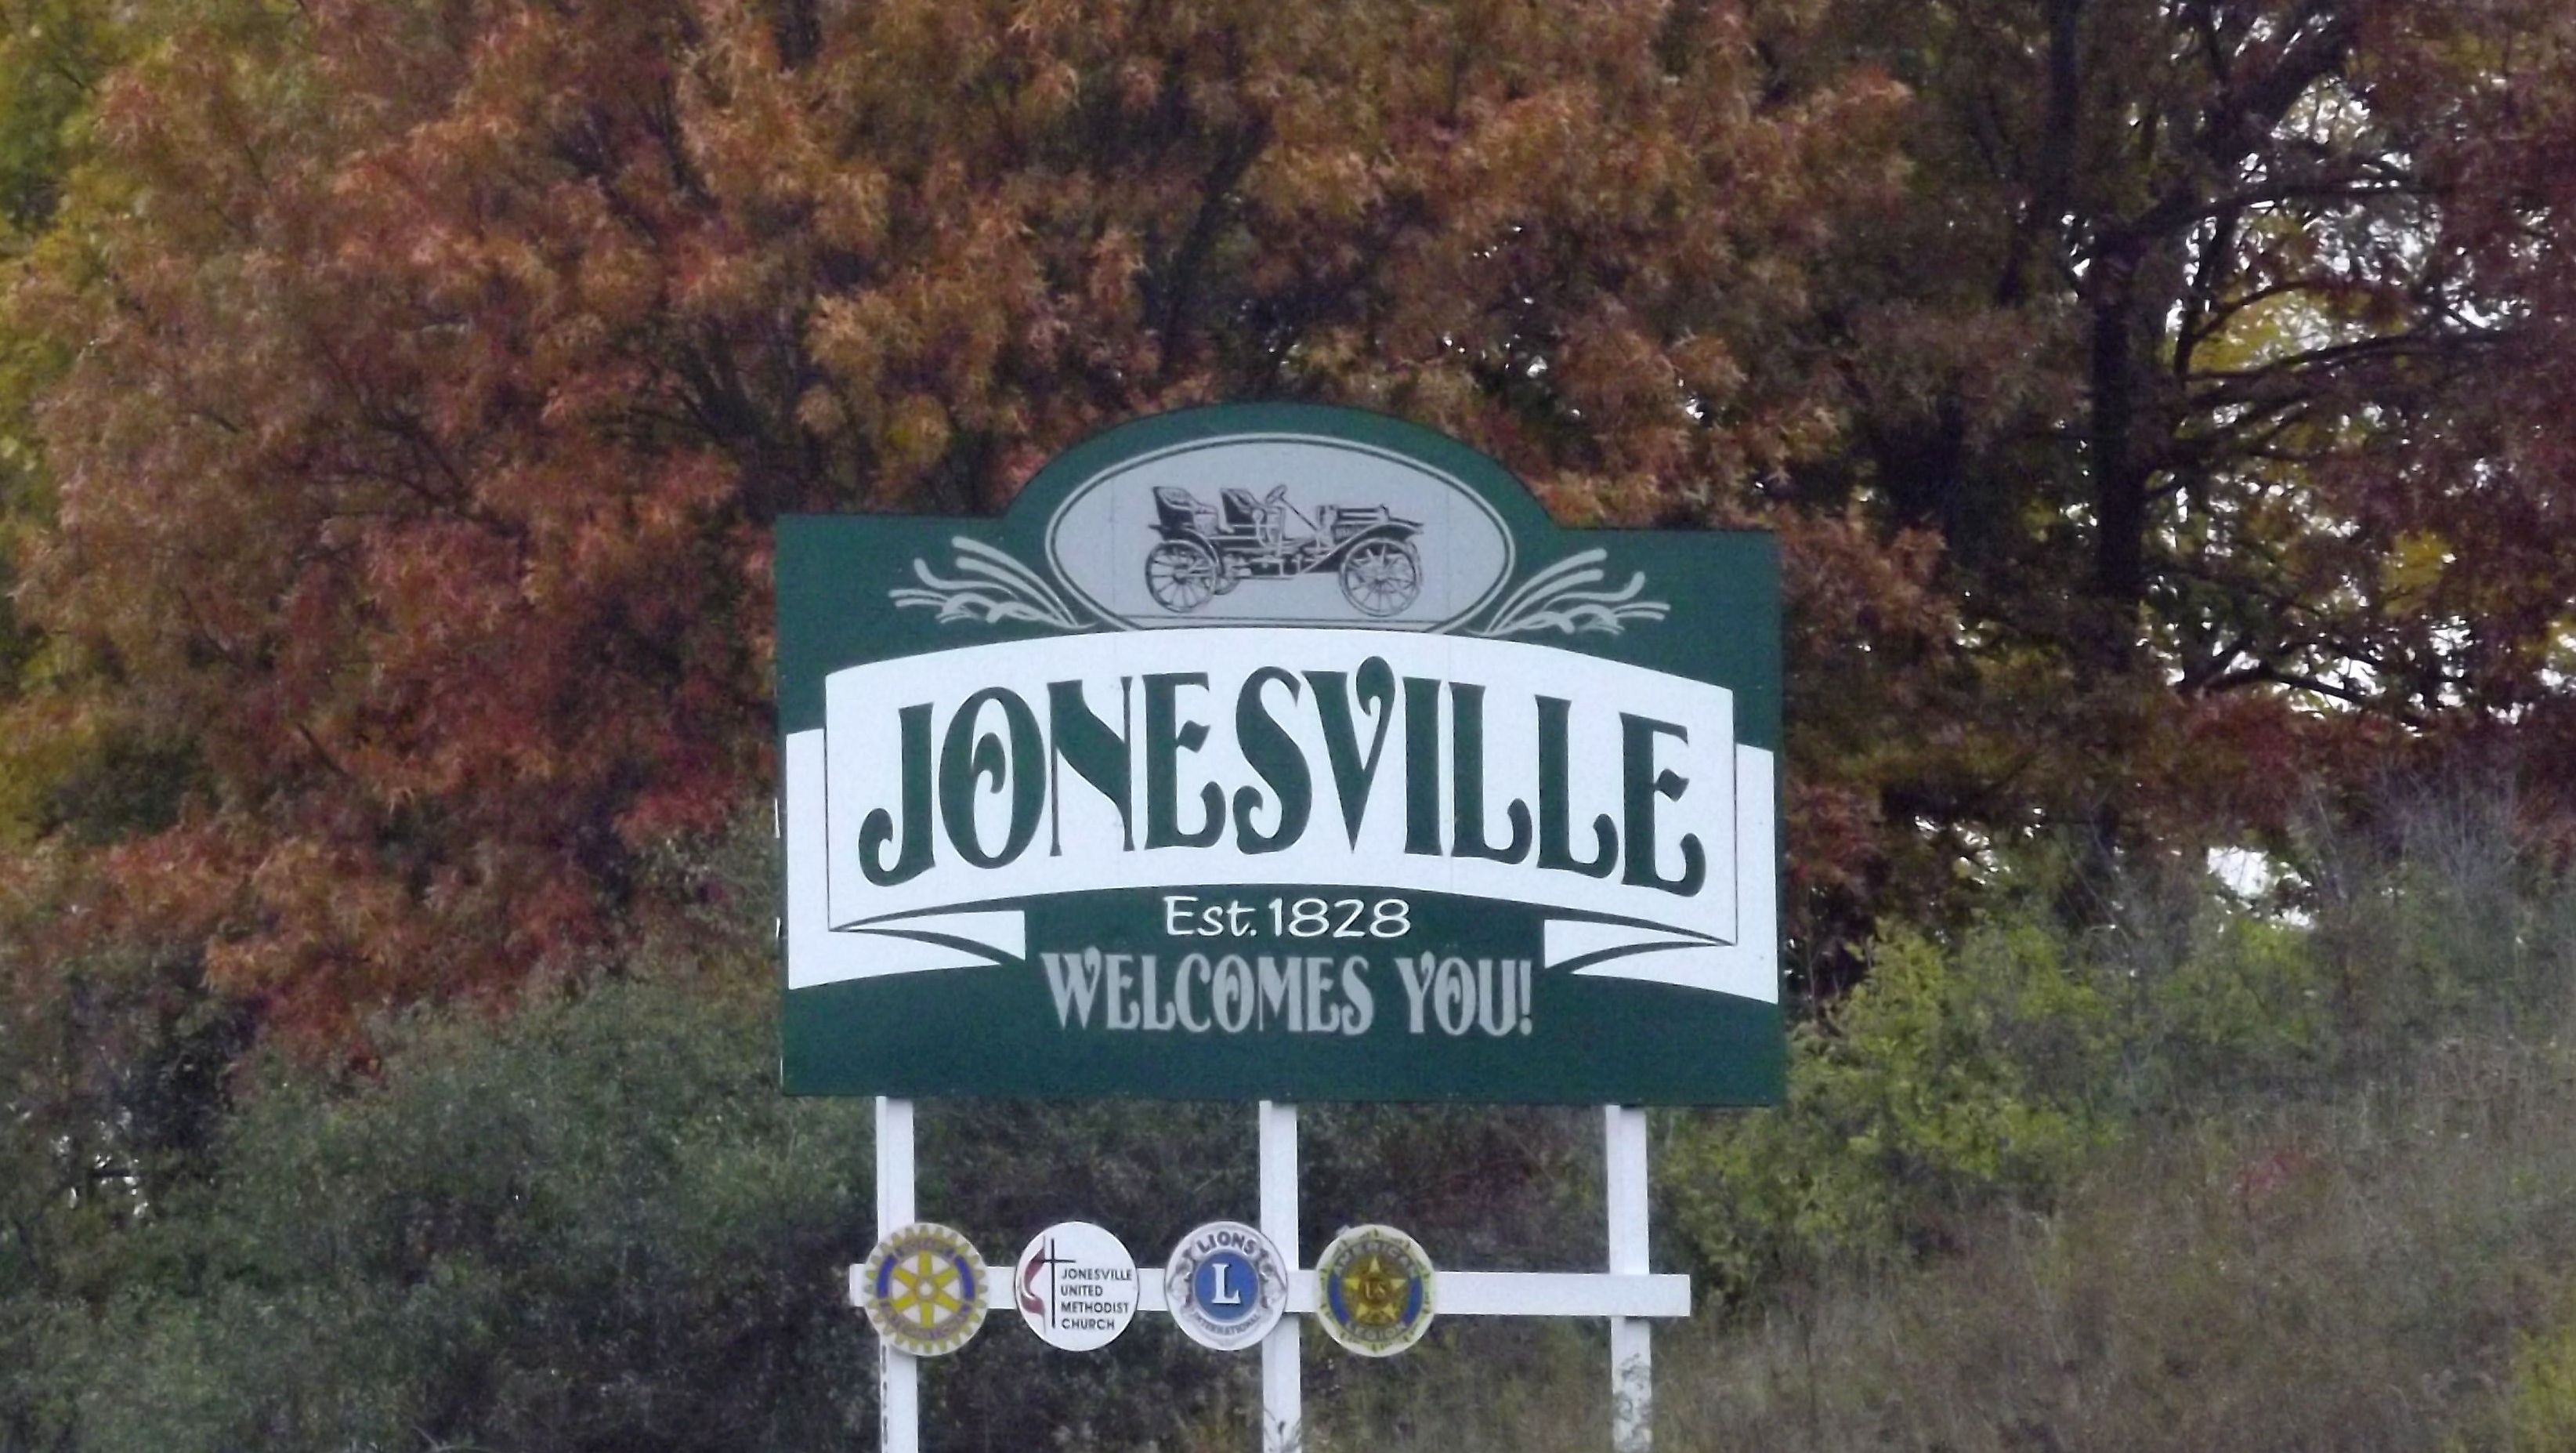 Welcome to Jonesville sign